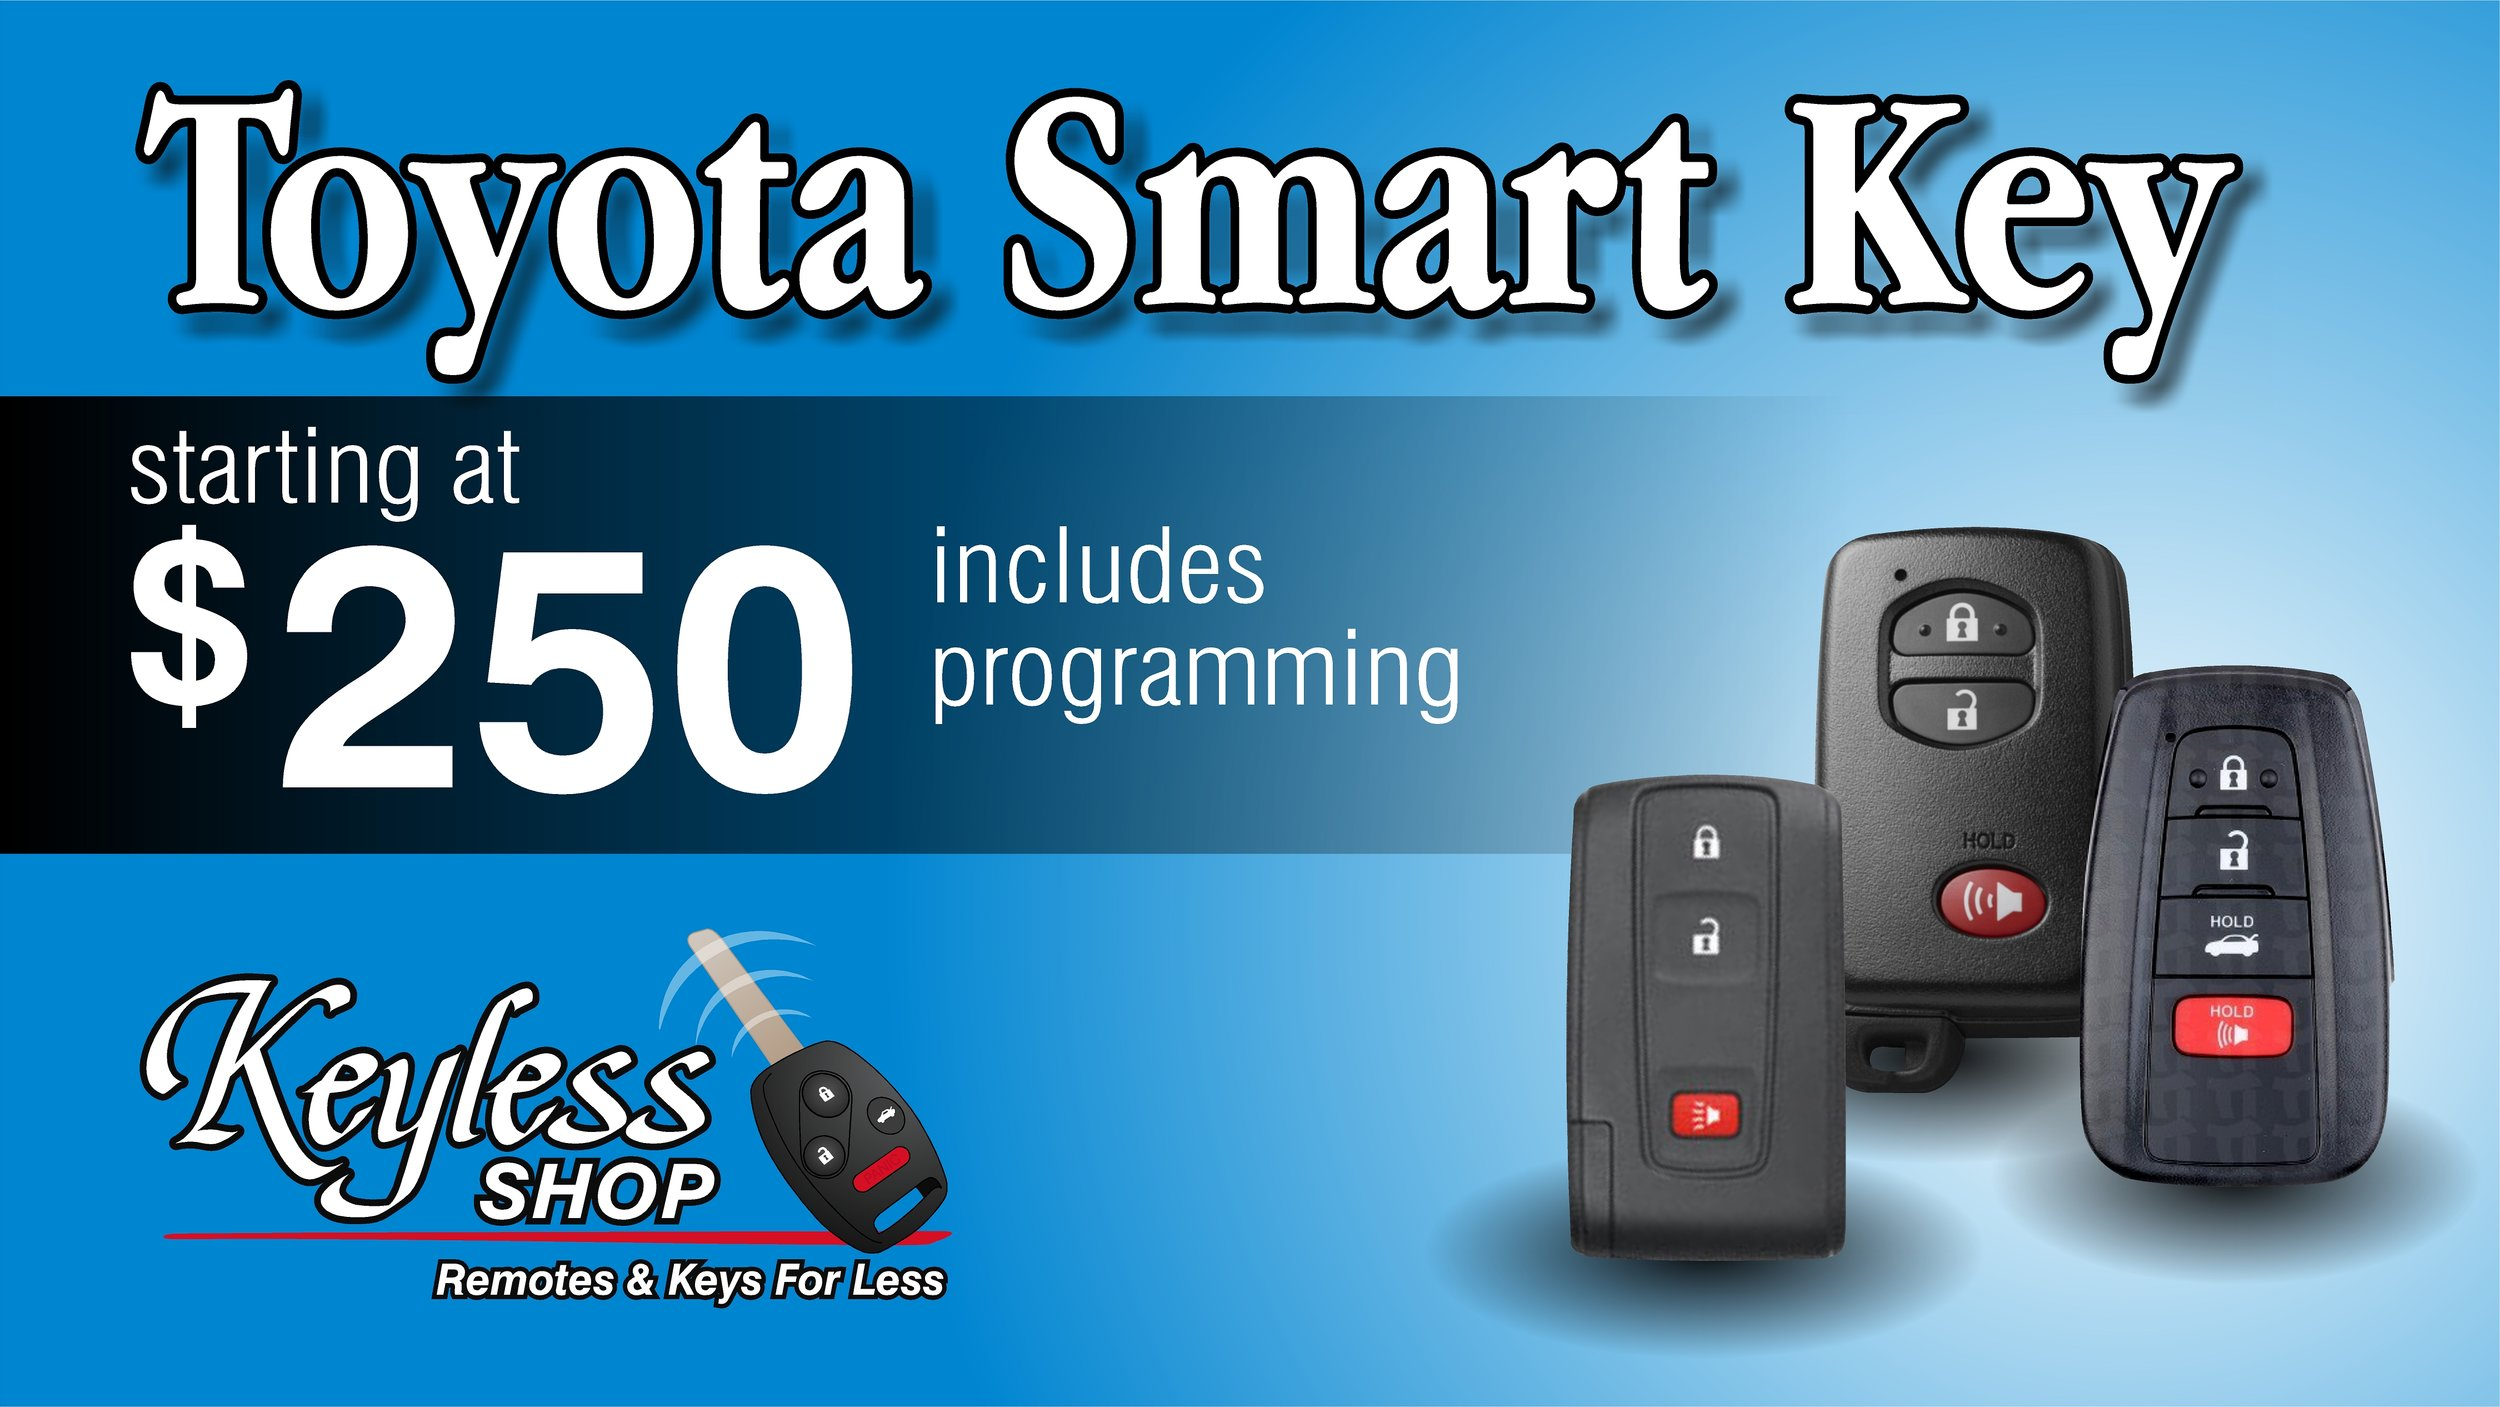 Toyota and Lexus smart keys starting at $250 at The Keyless Shop.  Save hundreds off dealer prices.